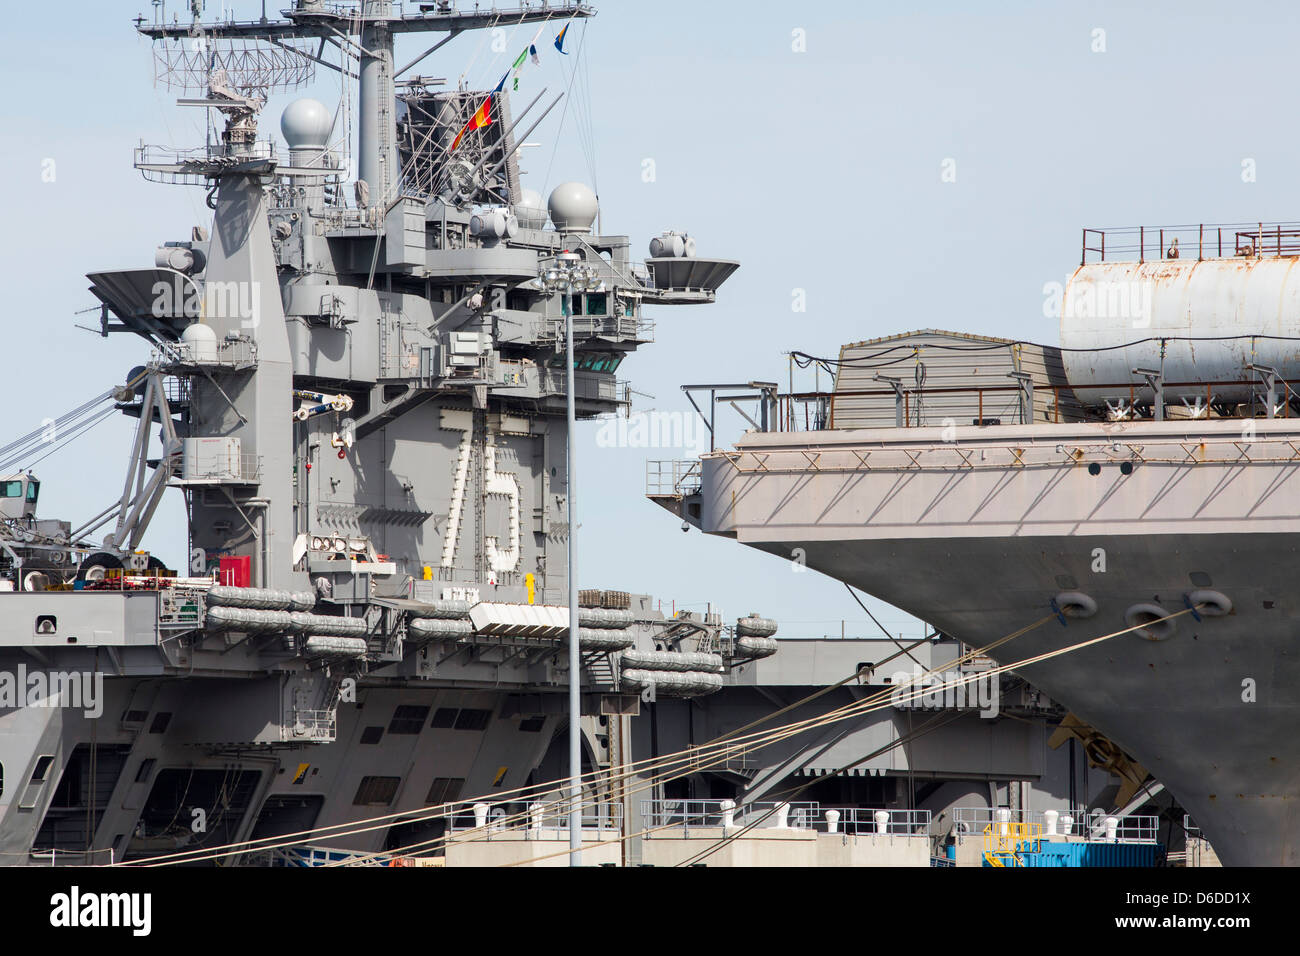 The aircraft carriers USS Harry S. Truman (CVN 75) and USS Abraham Lincoln (CVN-72) at Naval Station Norfolk. - Stock Image